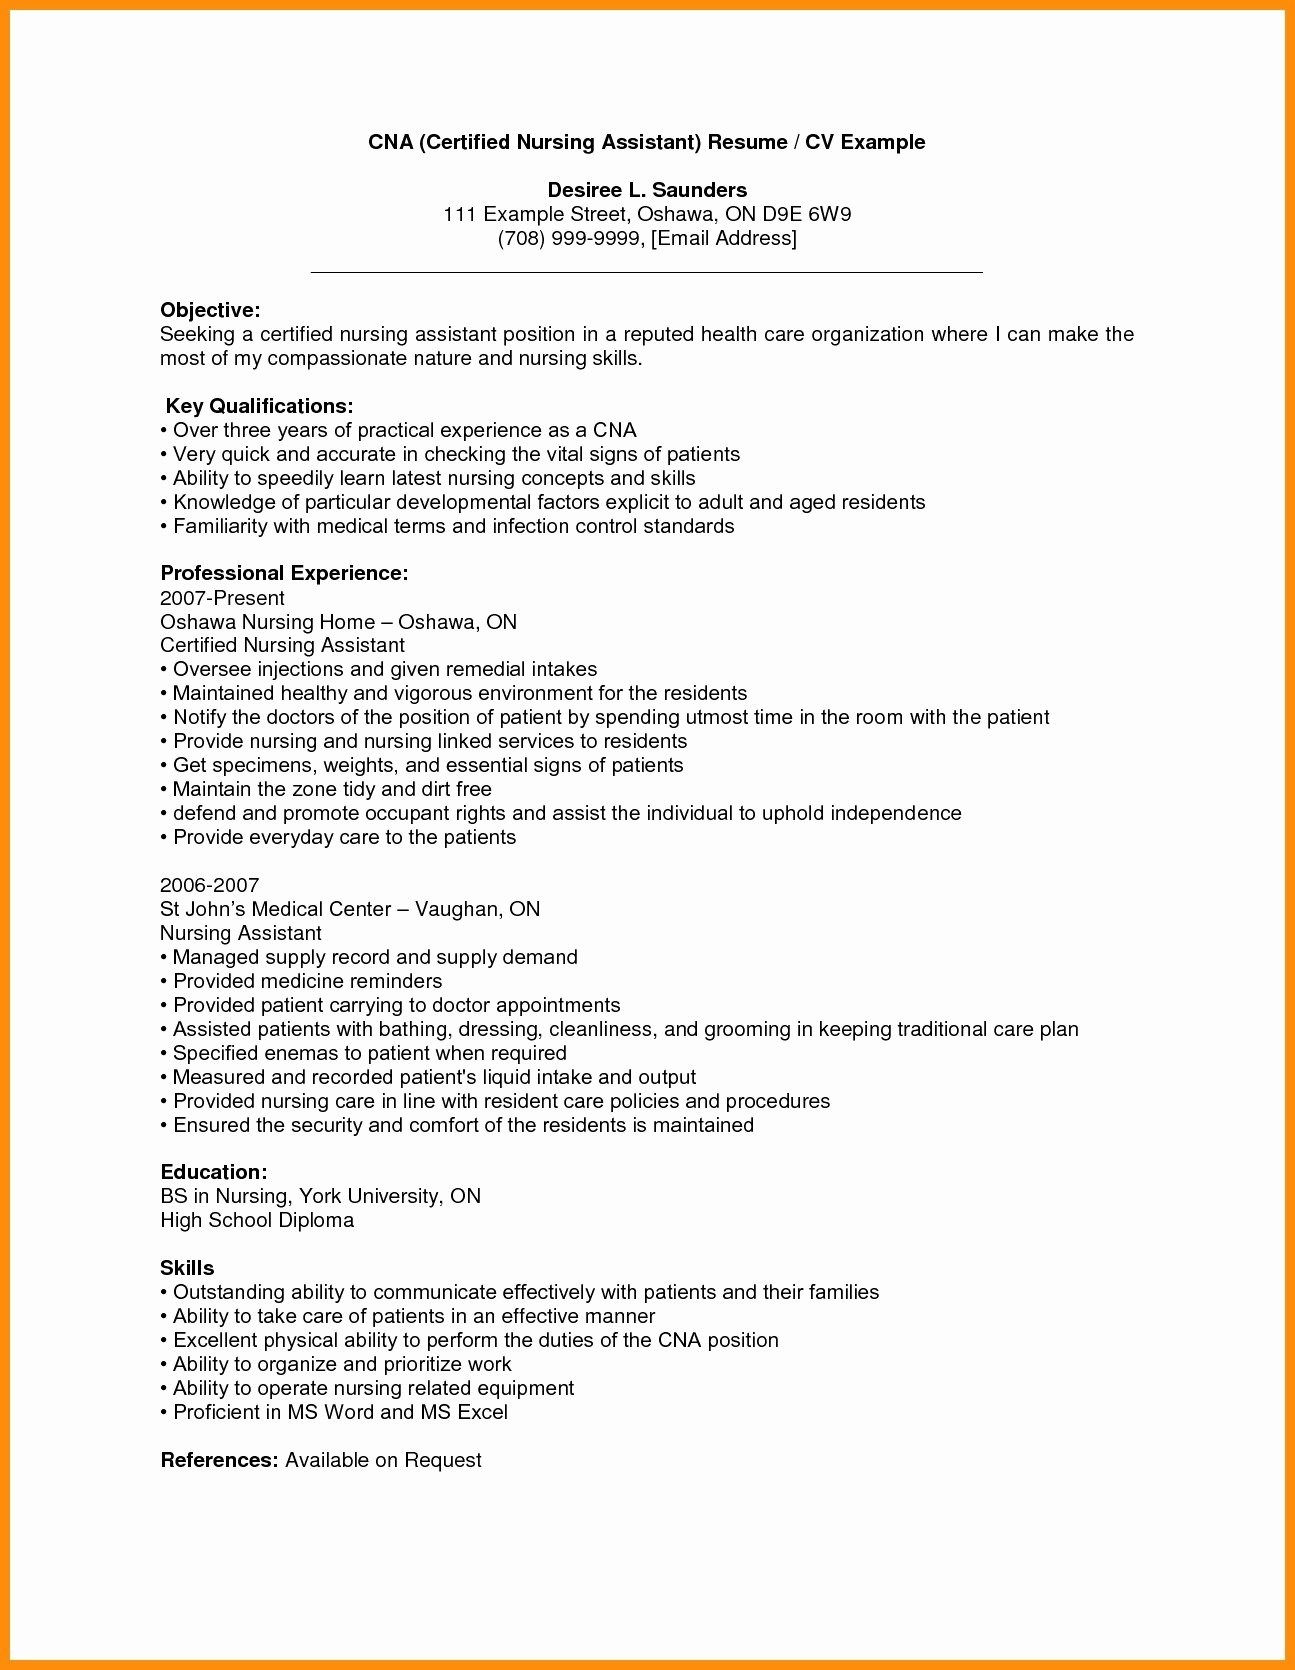 Traditional Cover Letter Template - Chemotherapy order Templates